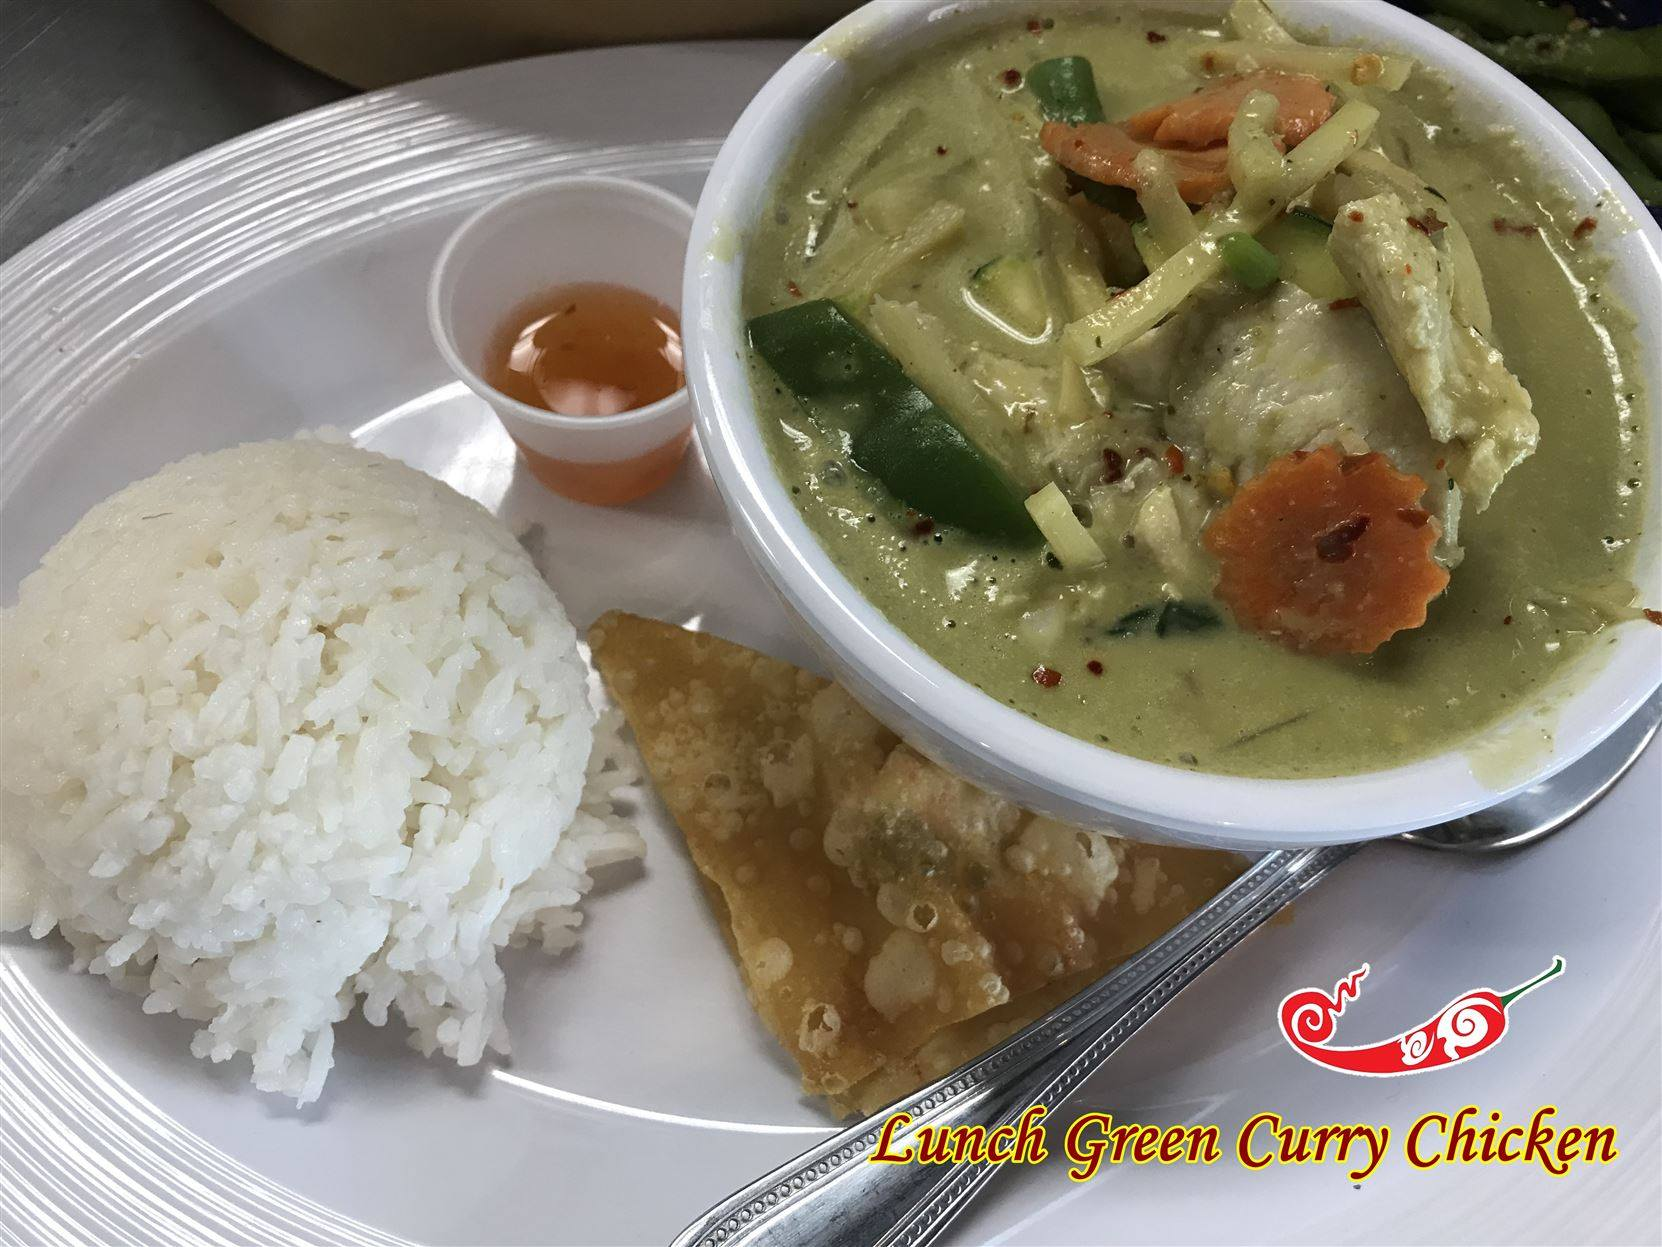 L14-Green Curry (Lunch)